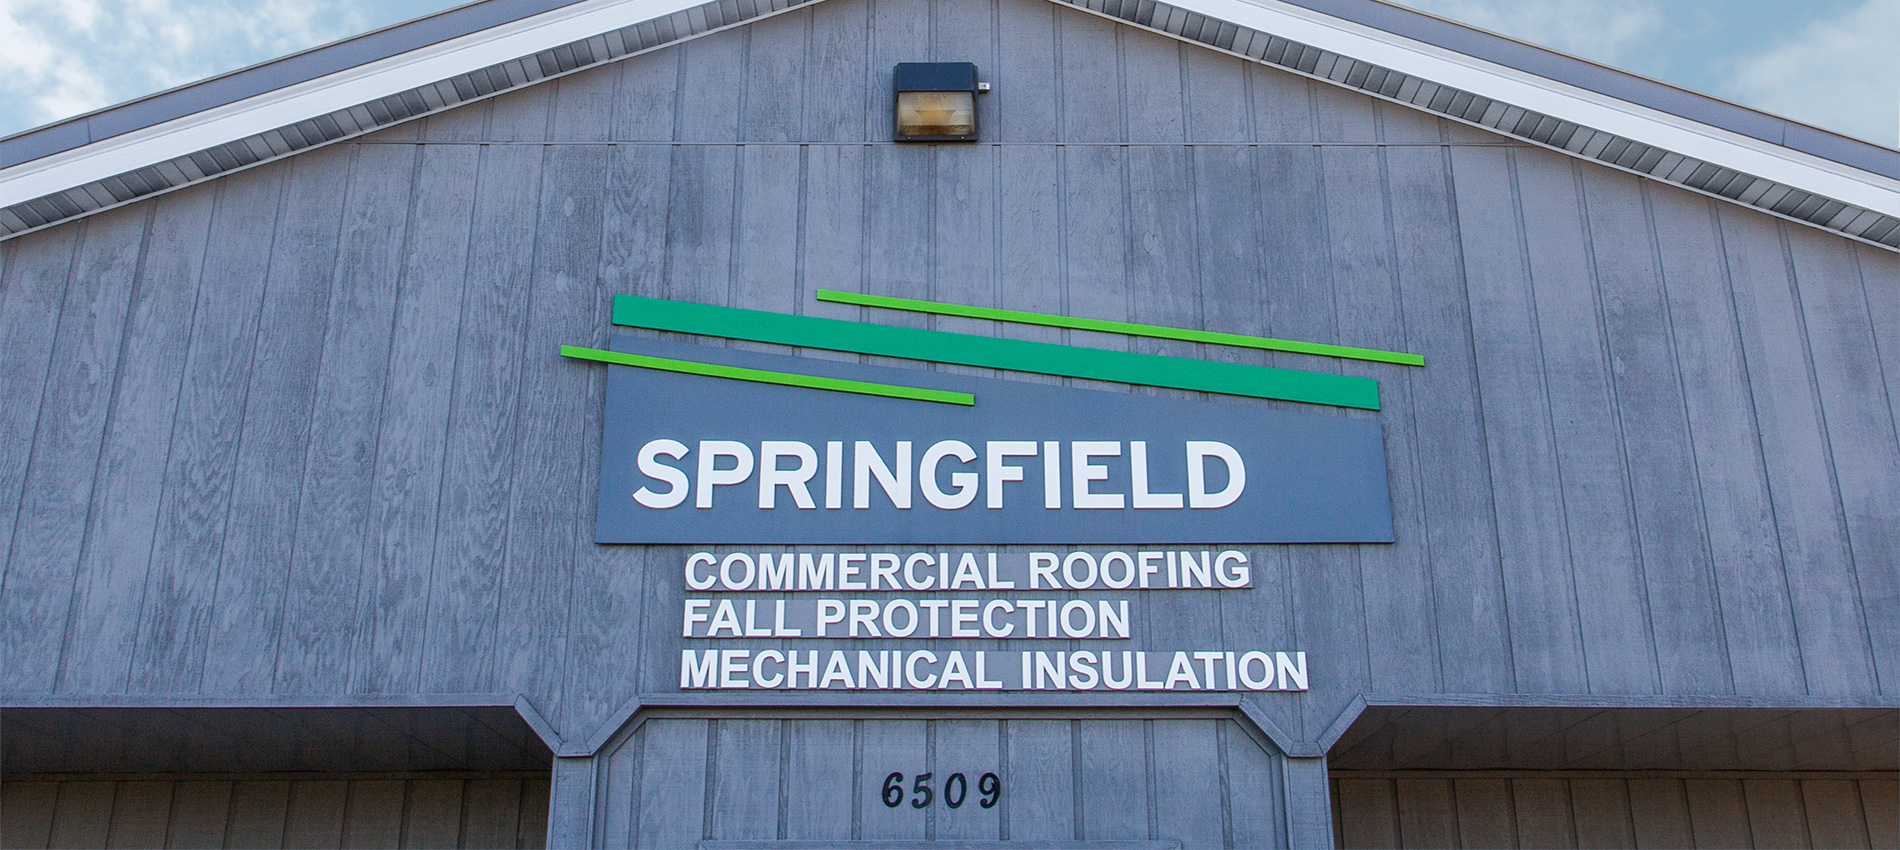 The Springfield family – Roofing, Mechanical Insulation, Fall Prevention, and Tiny Toddlers